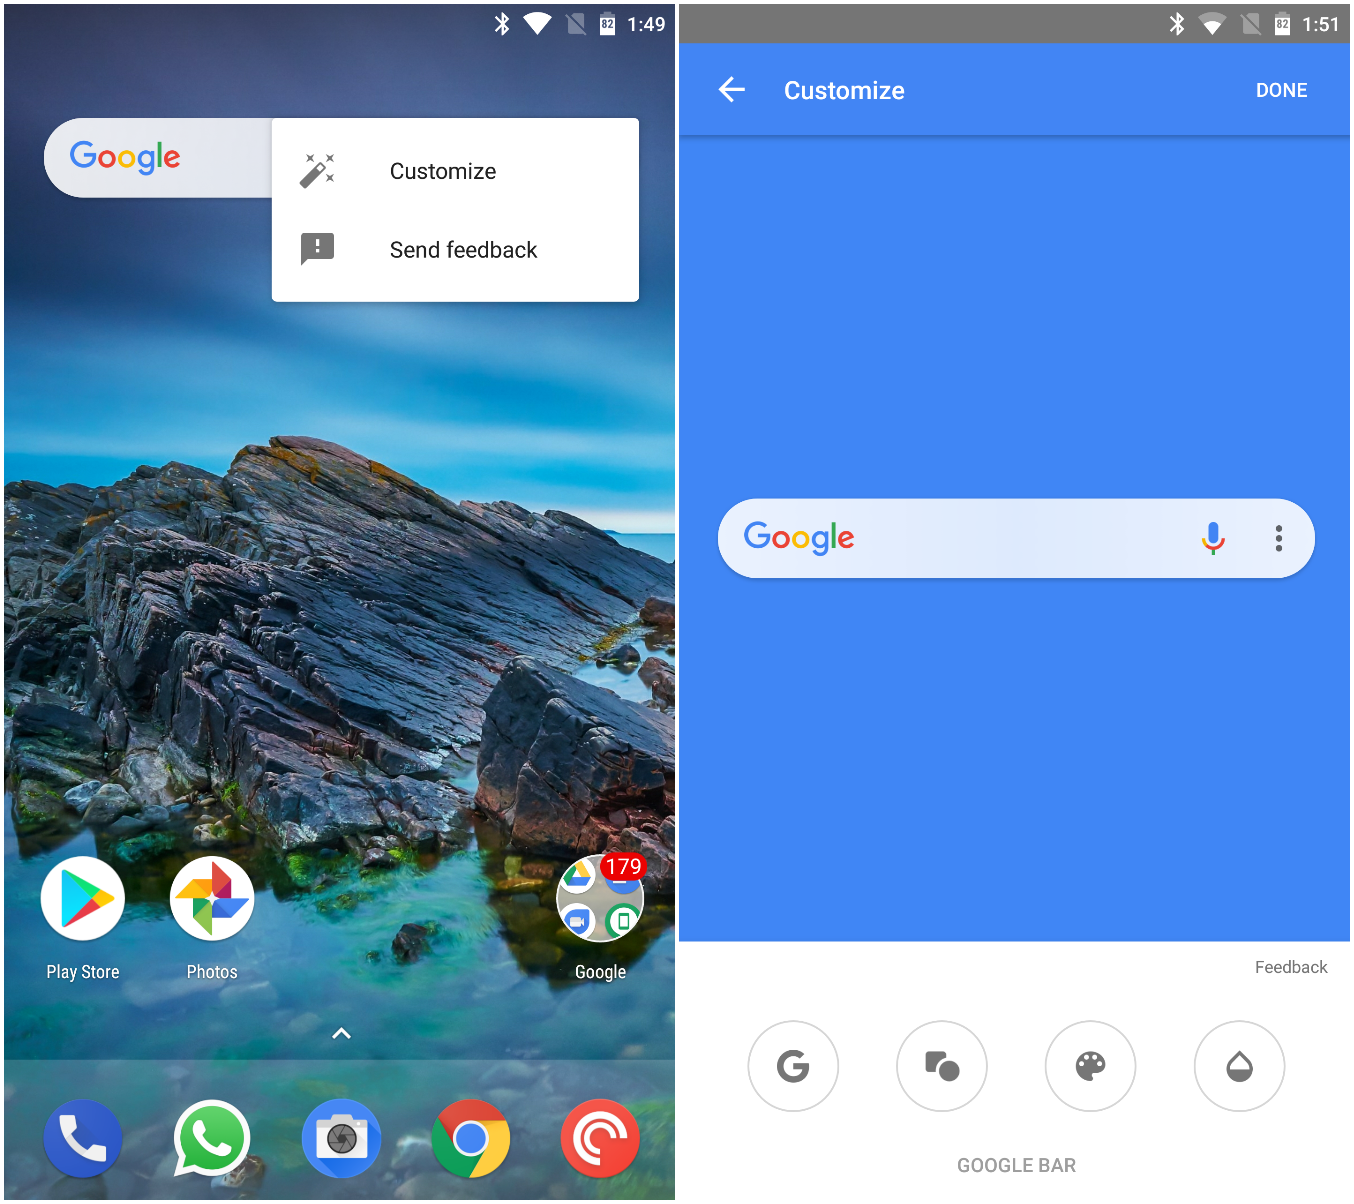 APK] Google App Beta 7 14 15 Adds Customizable Google Search Bar